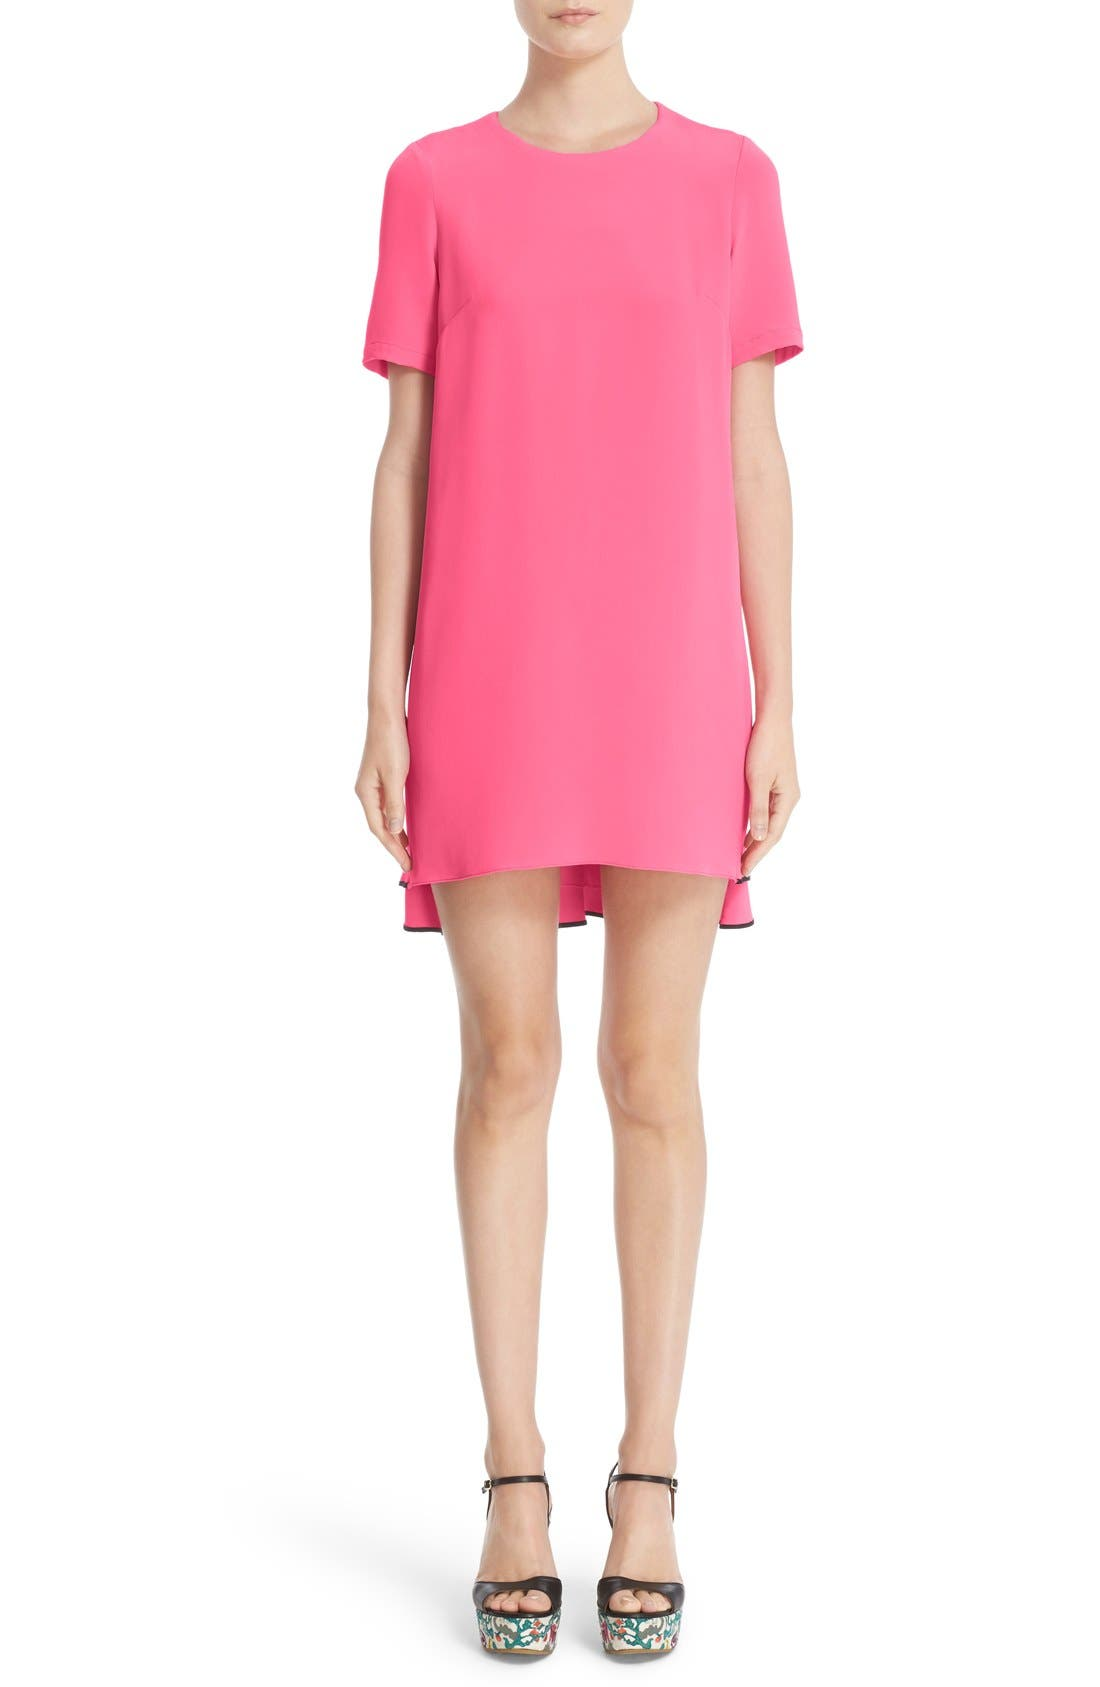 ADAM LIPPES Contrast Piping Satin Crepe Dress